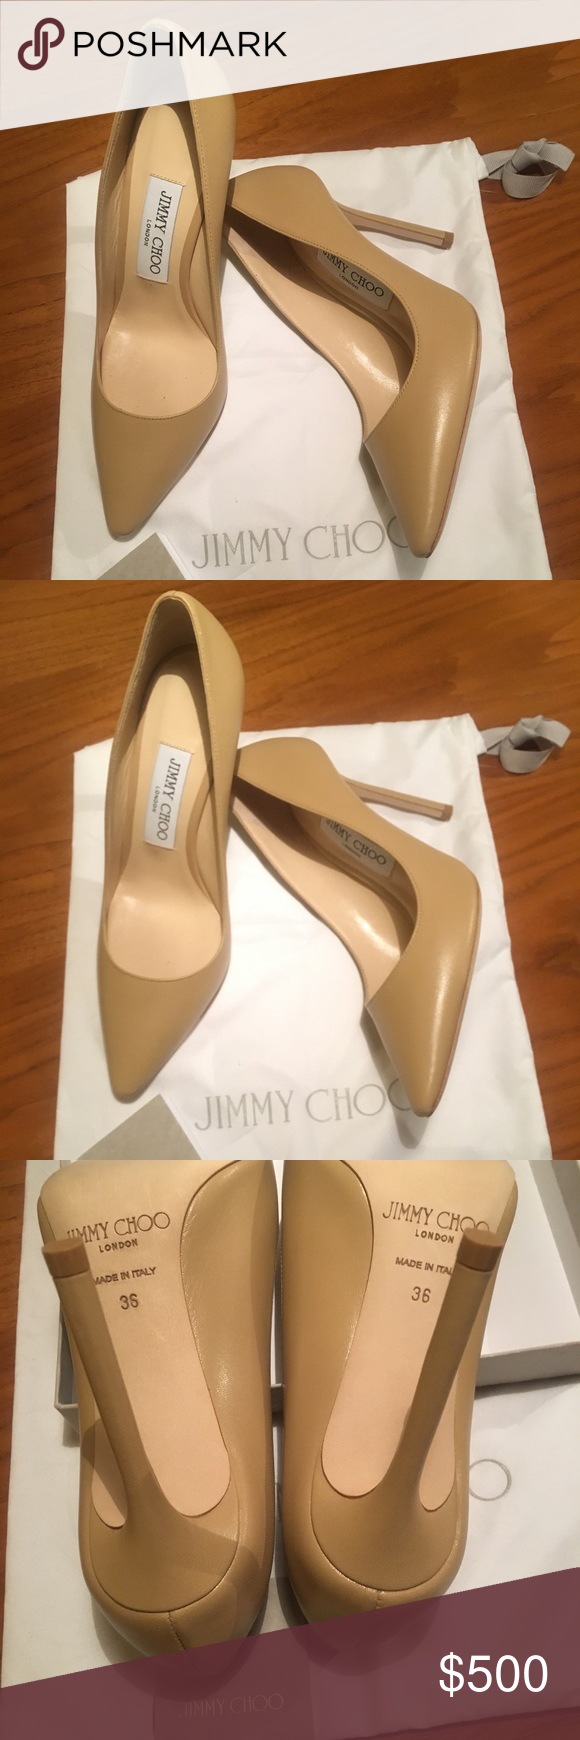 b1d693feda5d Never worn Jimmy Choo Romy 100 Nude KID size 36 The classic pointy toe pump  has